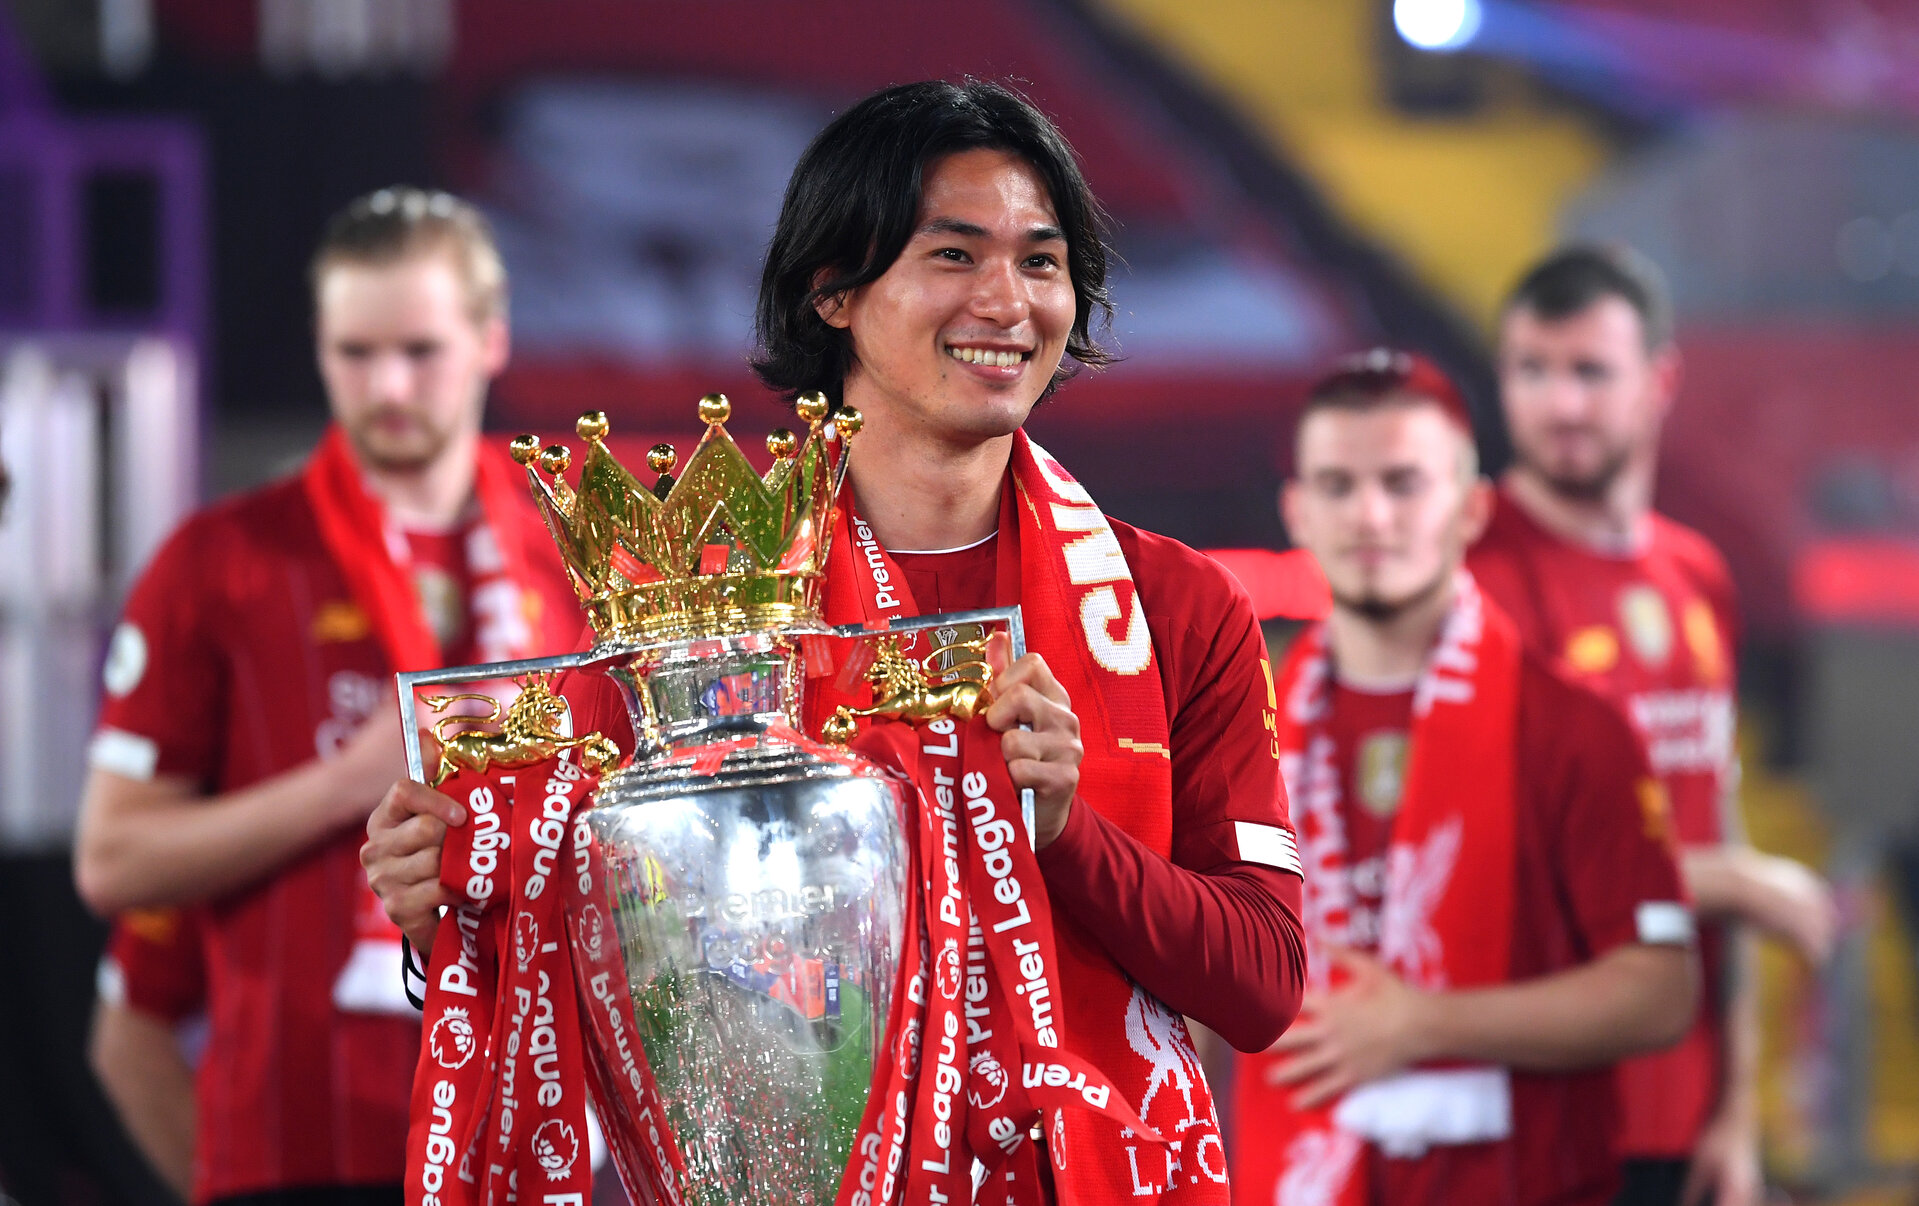 LIVERPOOL, ENGLAND - JULY 22: Takumi Minamino of Liverpool celebrates with The Premier League trophy following the Premier League match between Liverpool FC and Chelsea FC at Anfield on July 22, 2020 in Liverpool, England. Football Stadiums around Europe remain empty due to the Coronavirus Pandemic as Government social distancing laws prohibit fans inside venues resulting in all fixtures being played behind closed doors. (Photo by Laurence Griffiths/Getty Images)